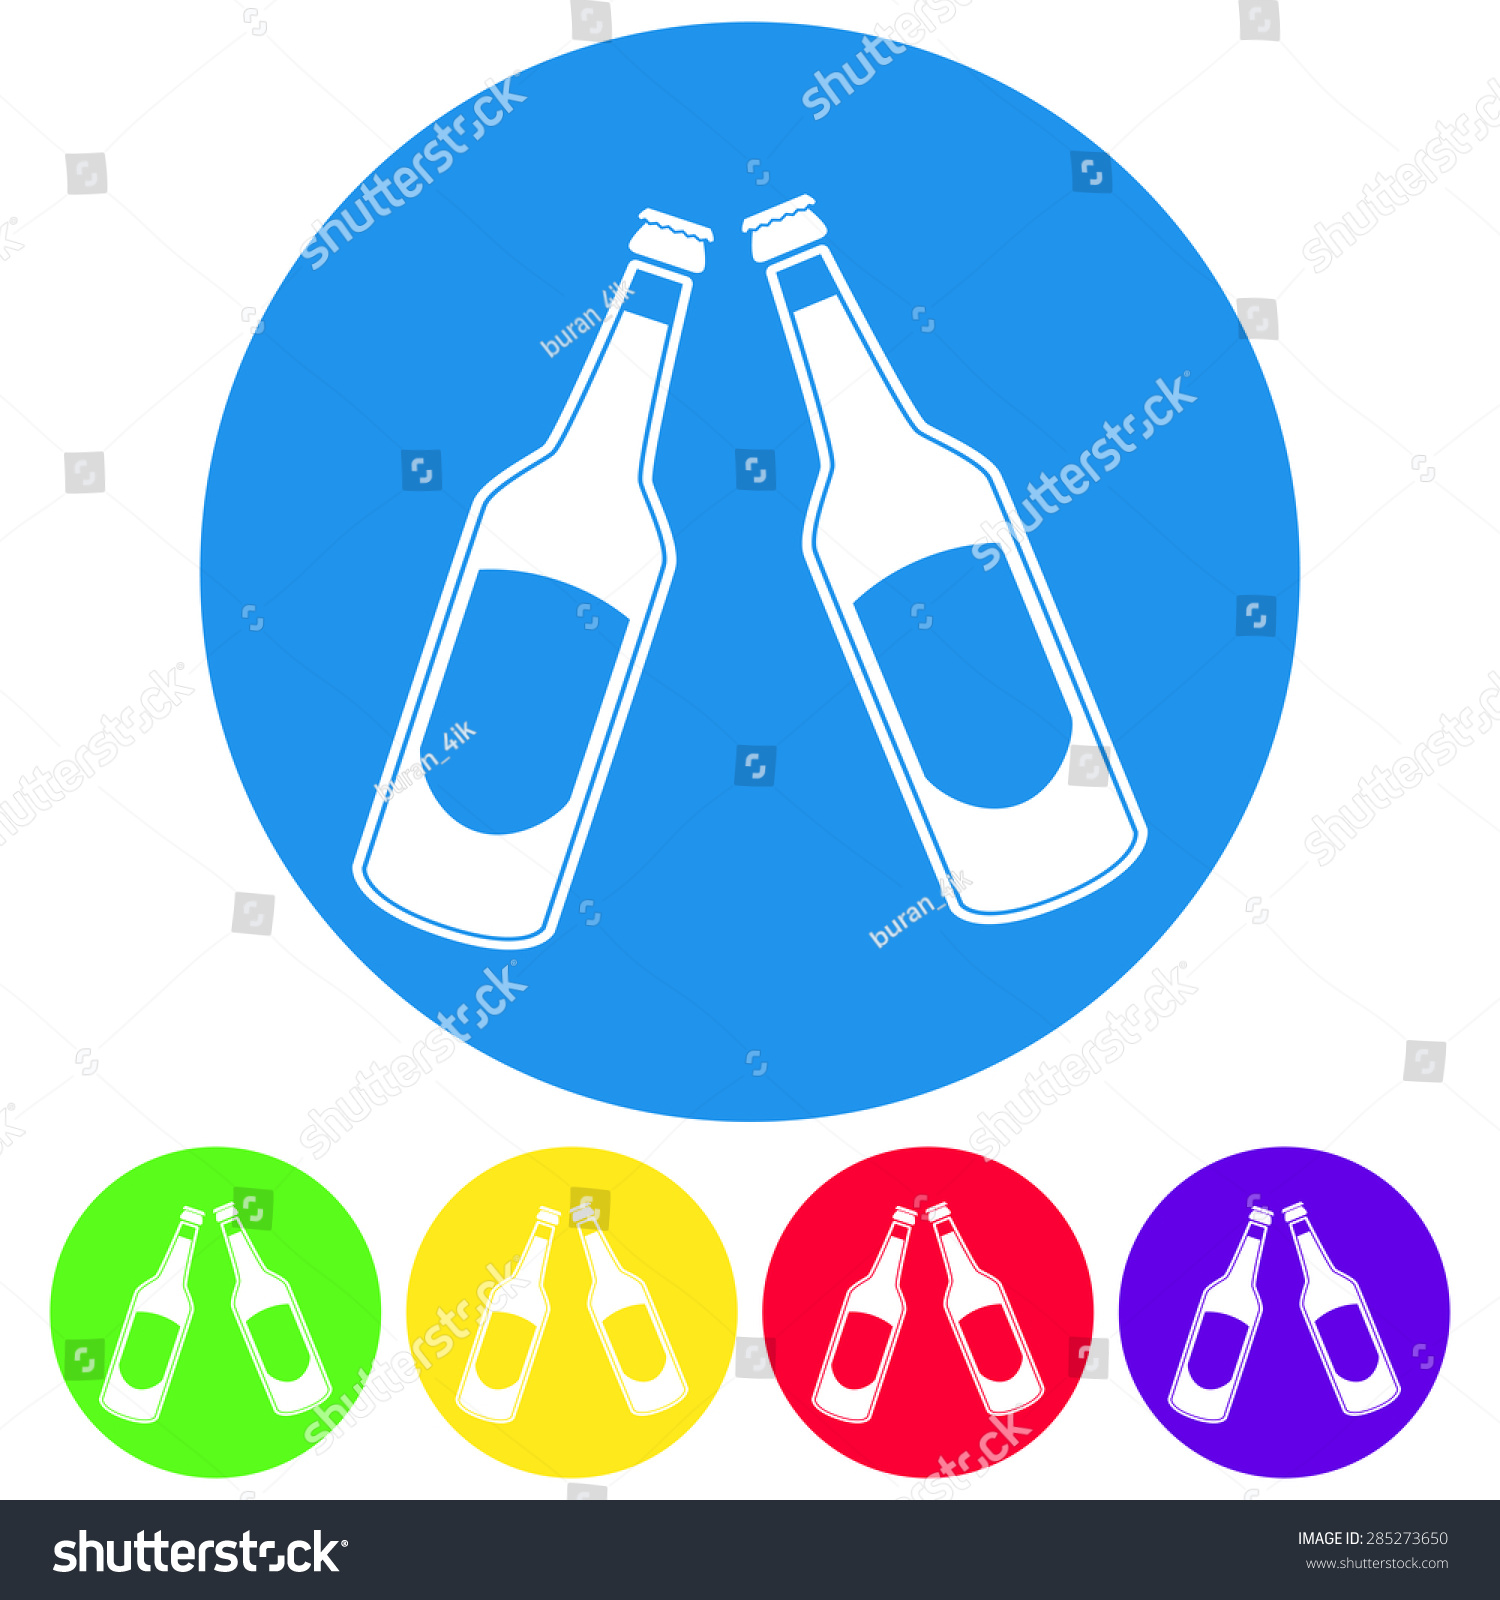 White apron ale - Vector Illustration Of Beer In A Bottle Icon Simple Black On White Background Button